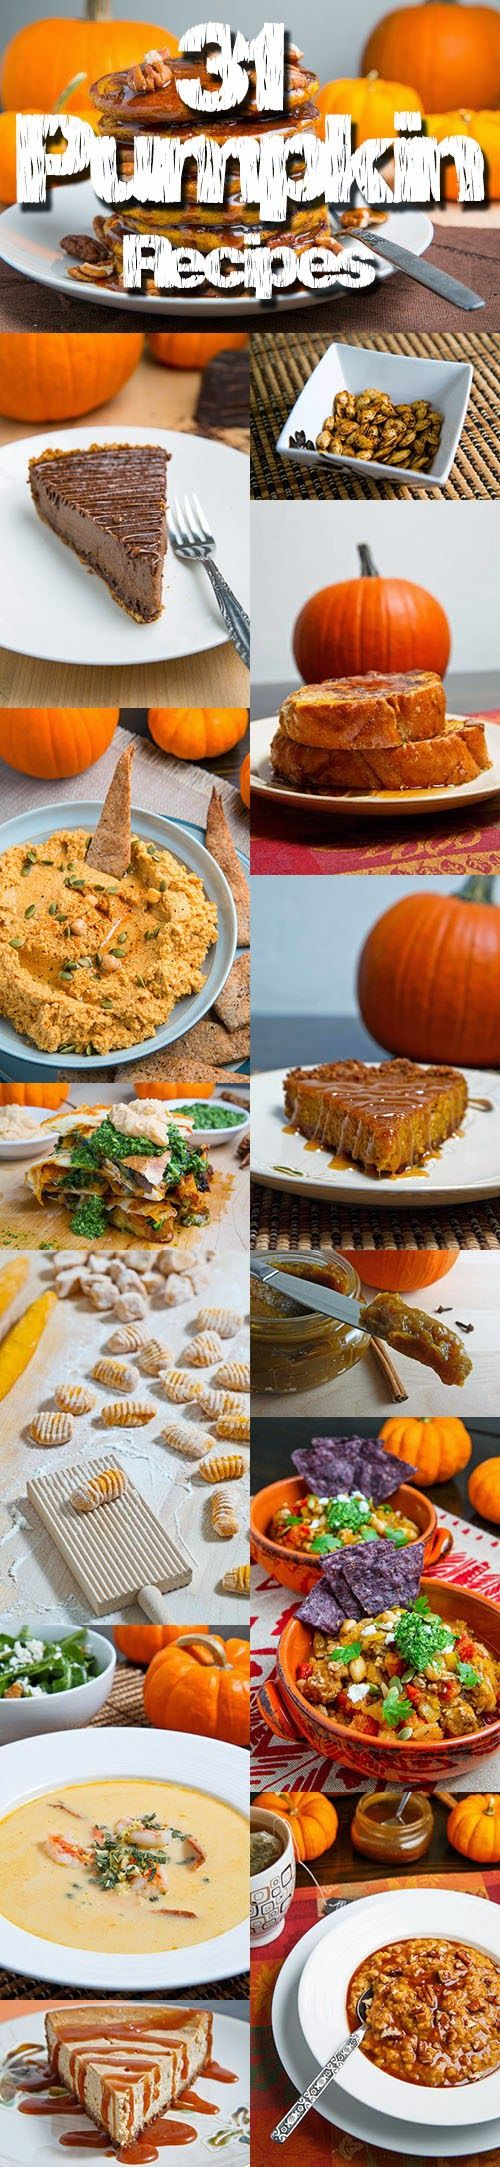 October is the month for pumpkins! Pumpkins are everywhere and it's the perfect time to take advantage...